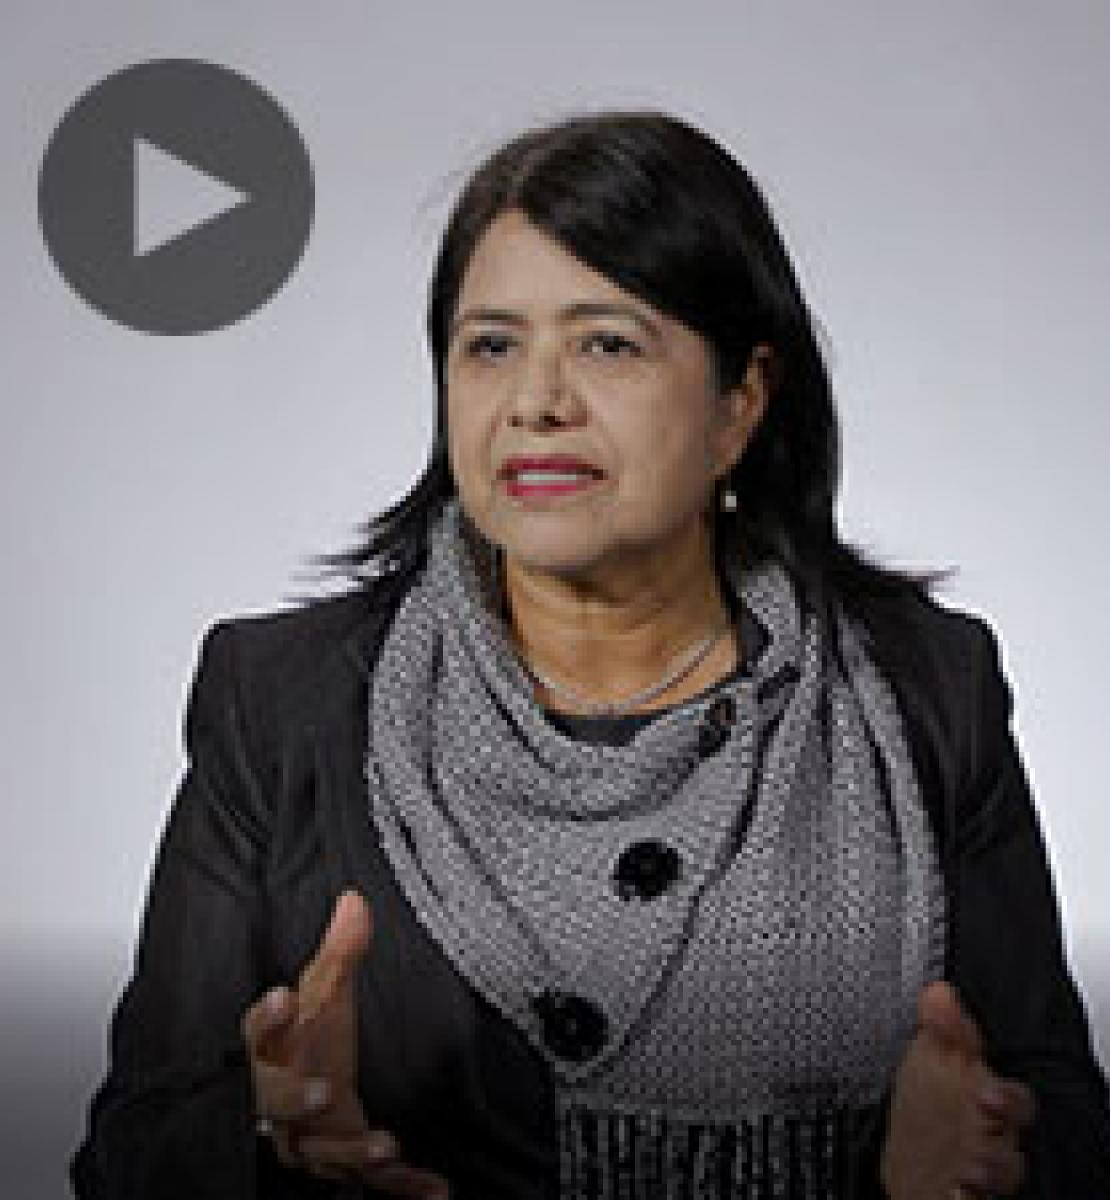 Screenshot from video message shows Resident Coordinator, Rebeca Arias Flores